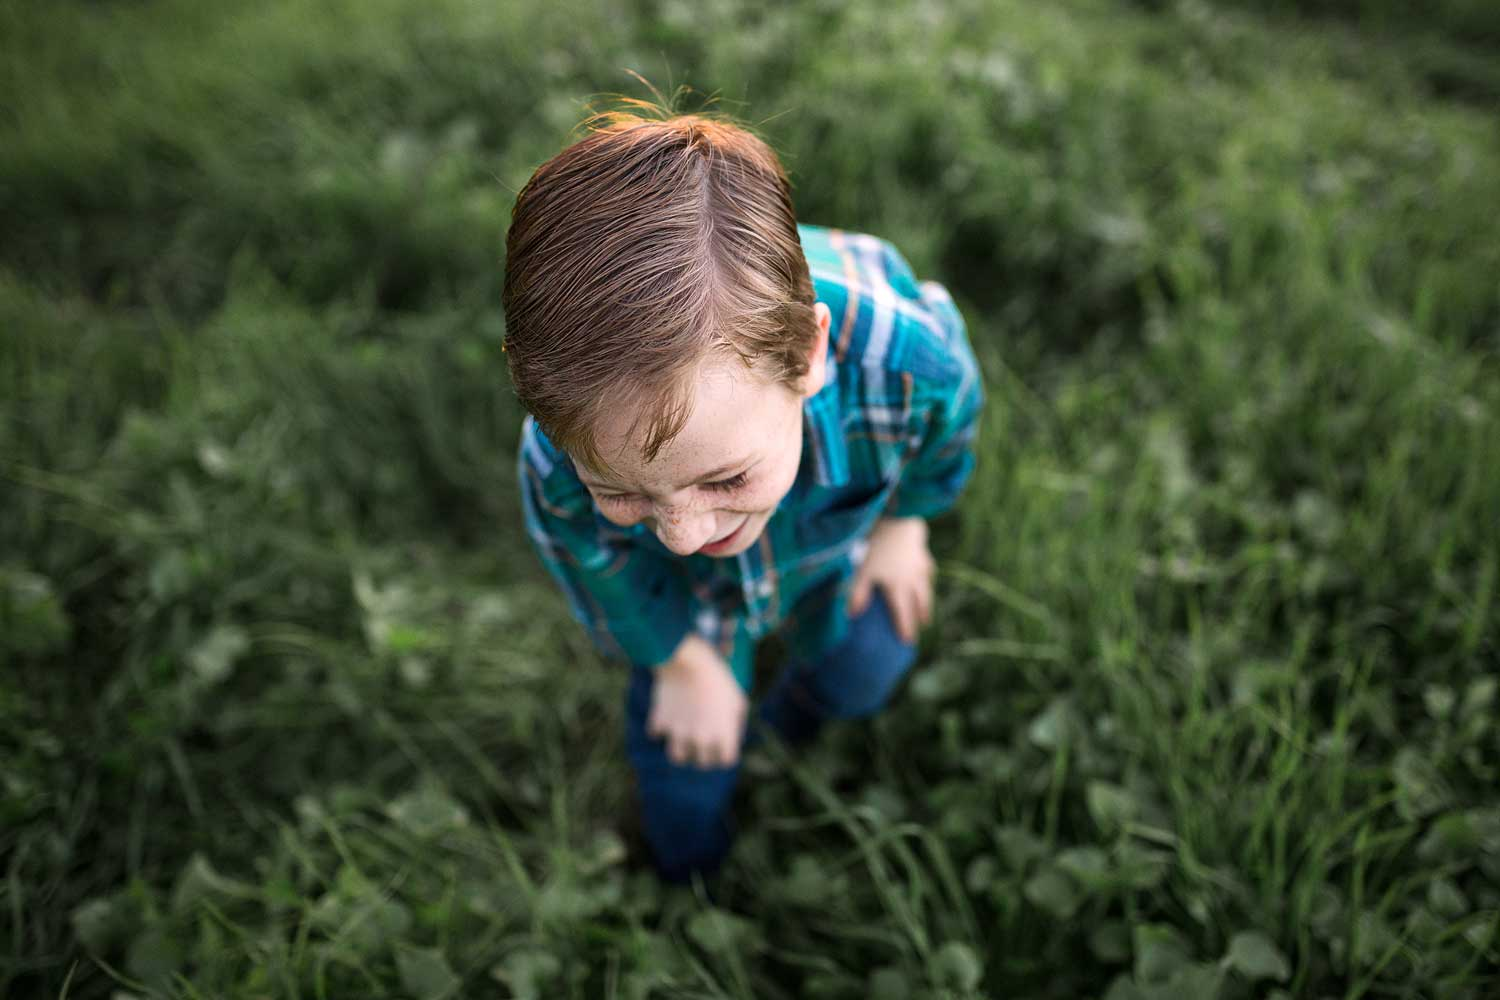 A boy is laughing in a green field in Roseville, California with Amy Wright Photography.